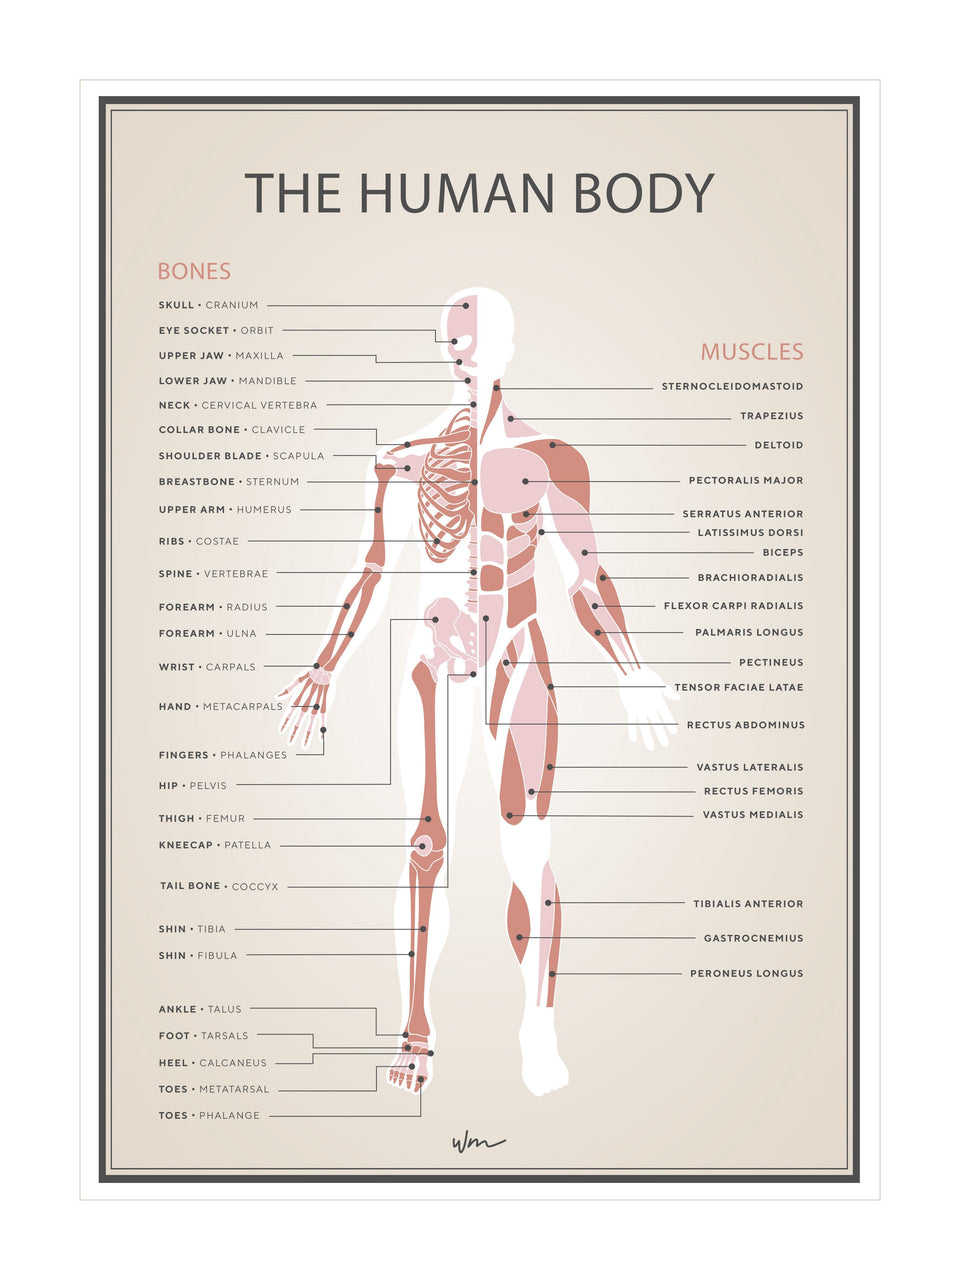 Human skeleton & muscles poster decal - Coral vintage look